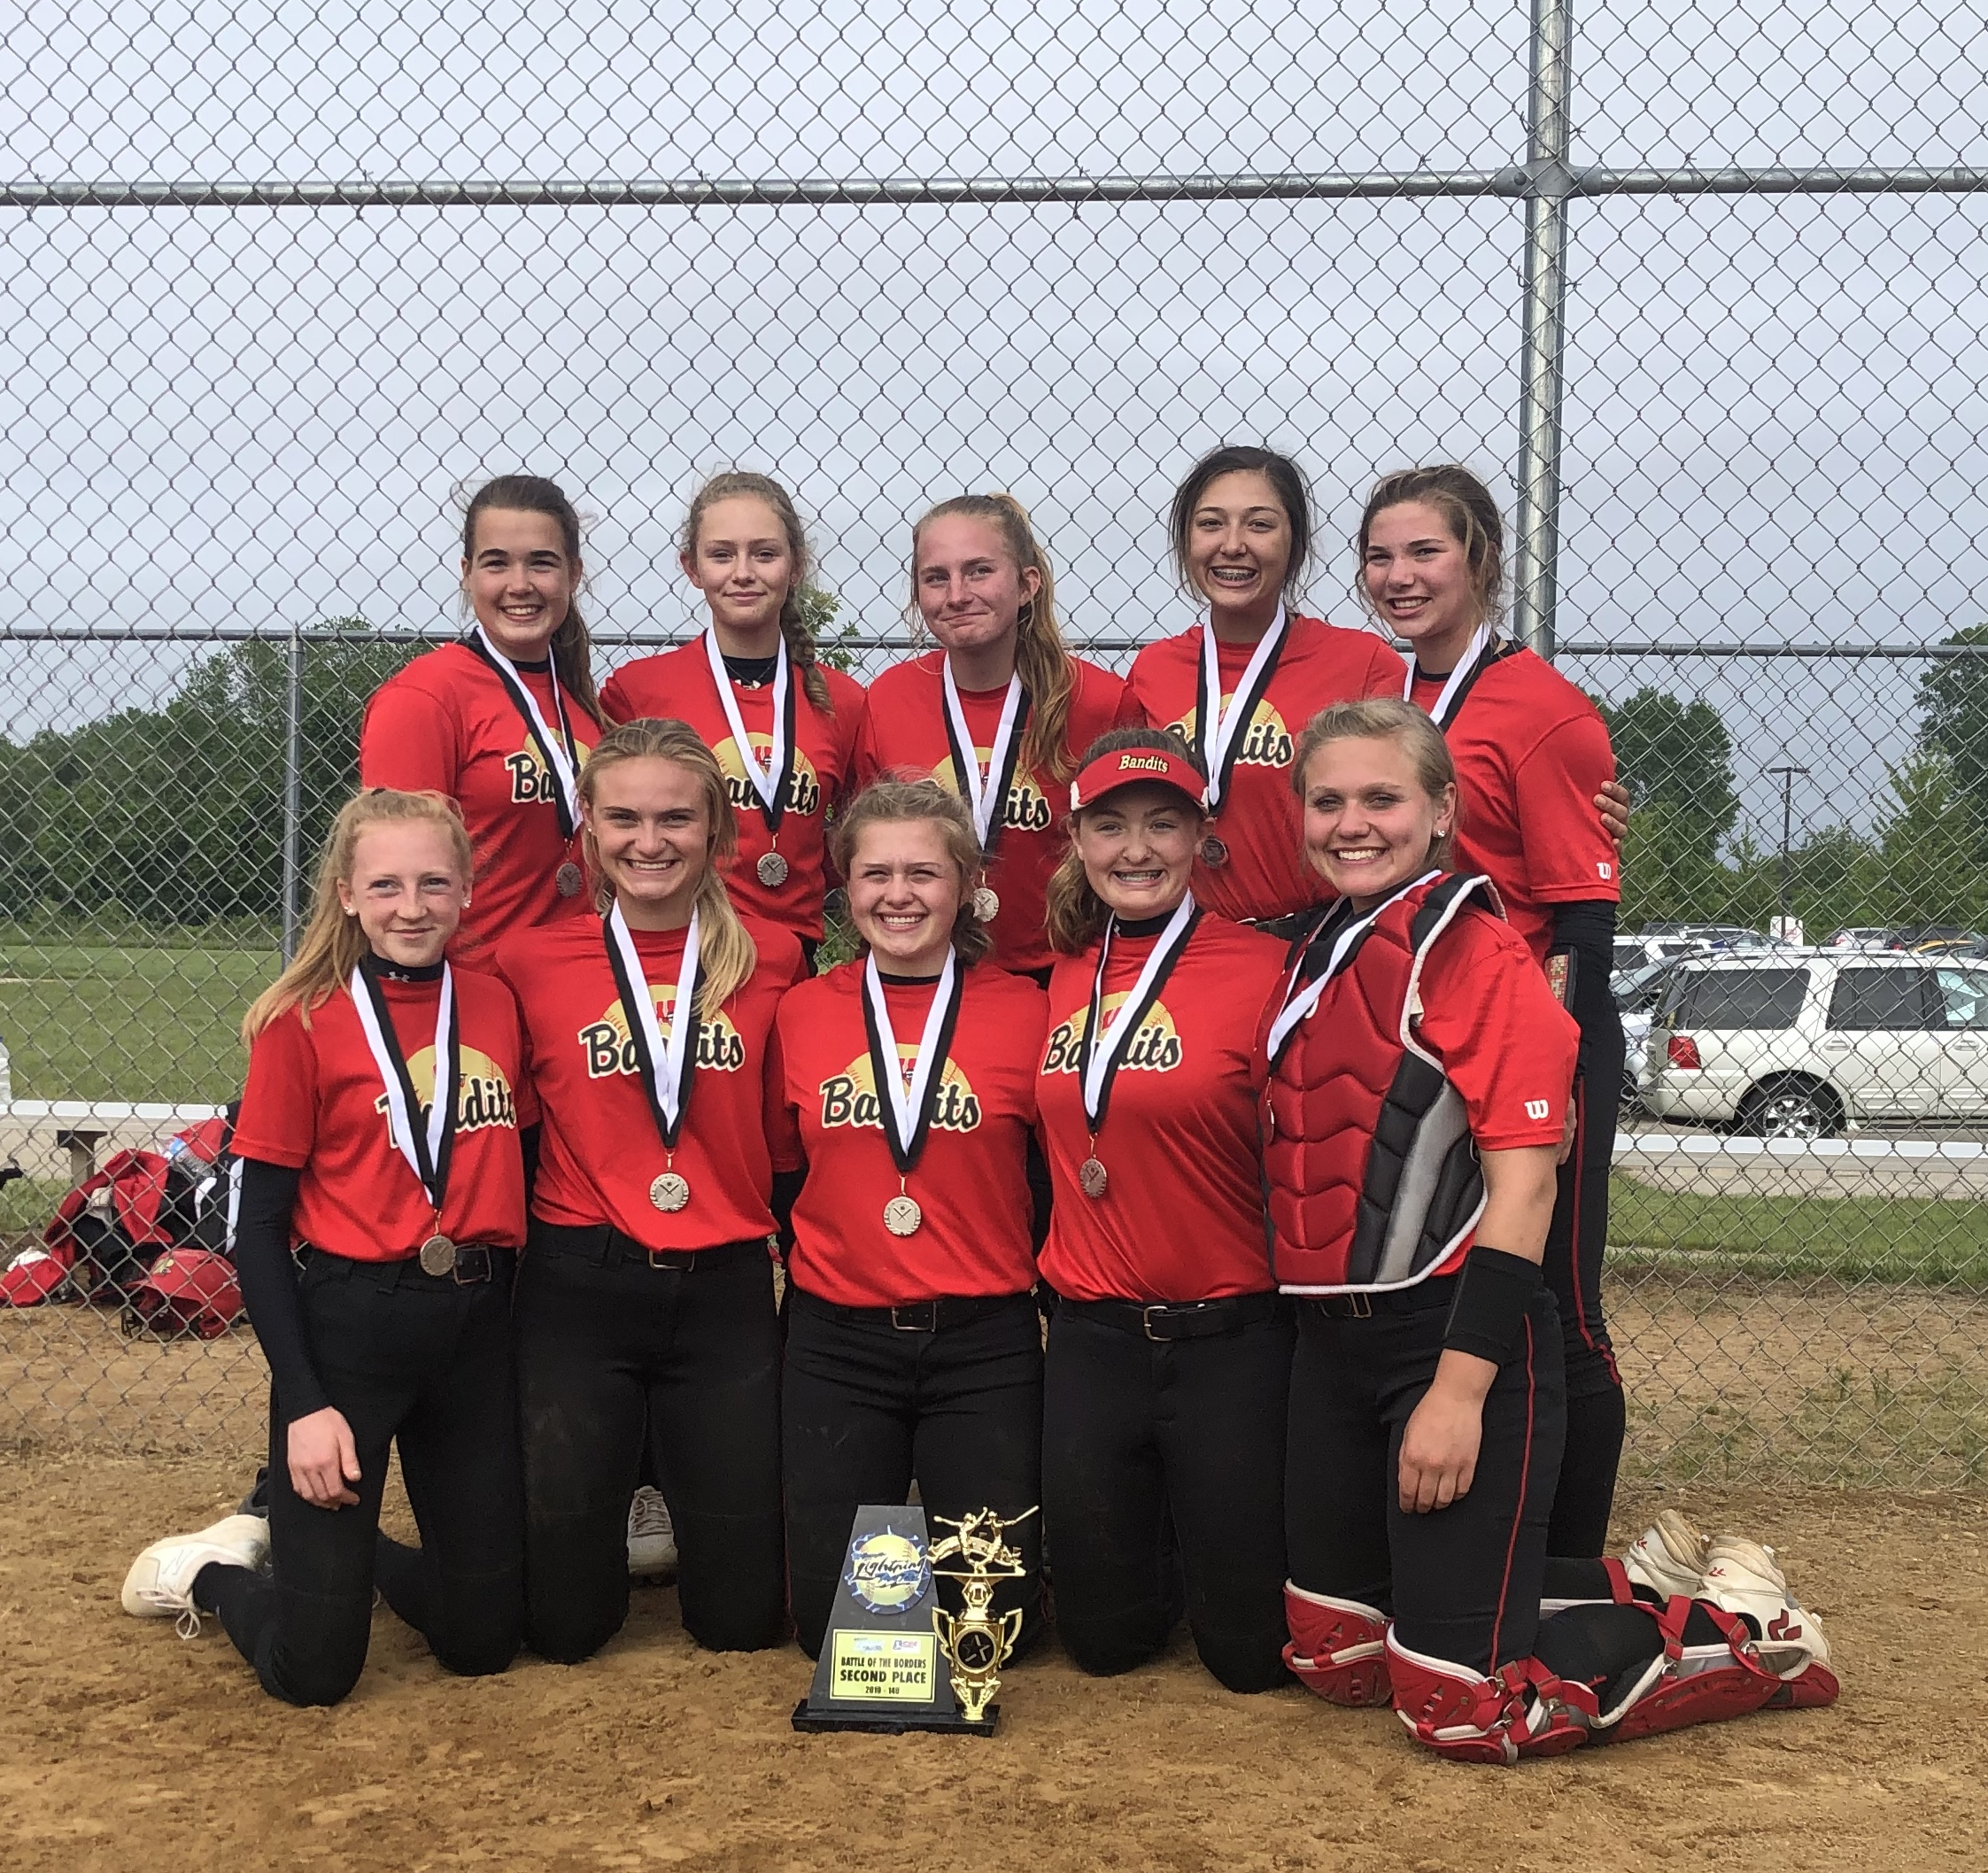 Bandits 14 Gold Runner Up at the Battle of the Boarders